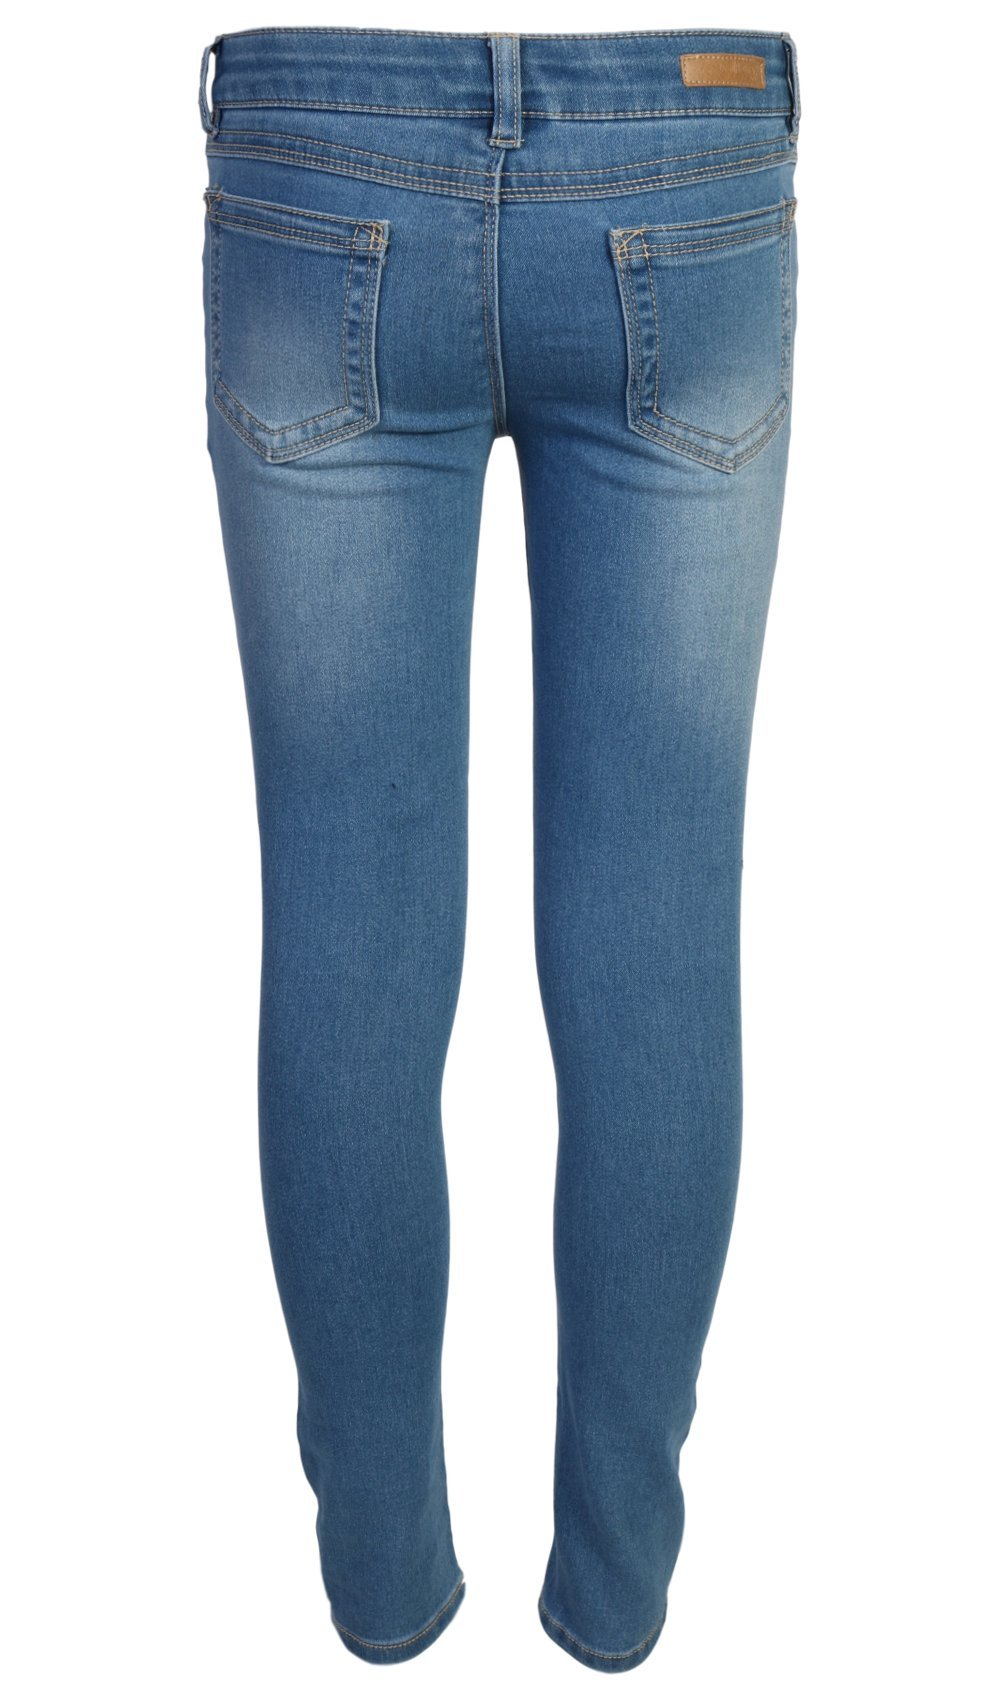 WallFlower Girl's Skinny Soft Stretch Jeans with Rips and Tears, Light Wash/Floral 8 by WallFlower Jeans (Image #5)